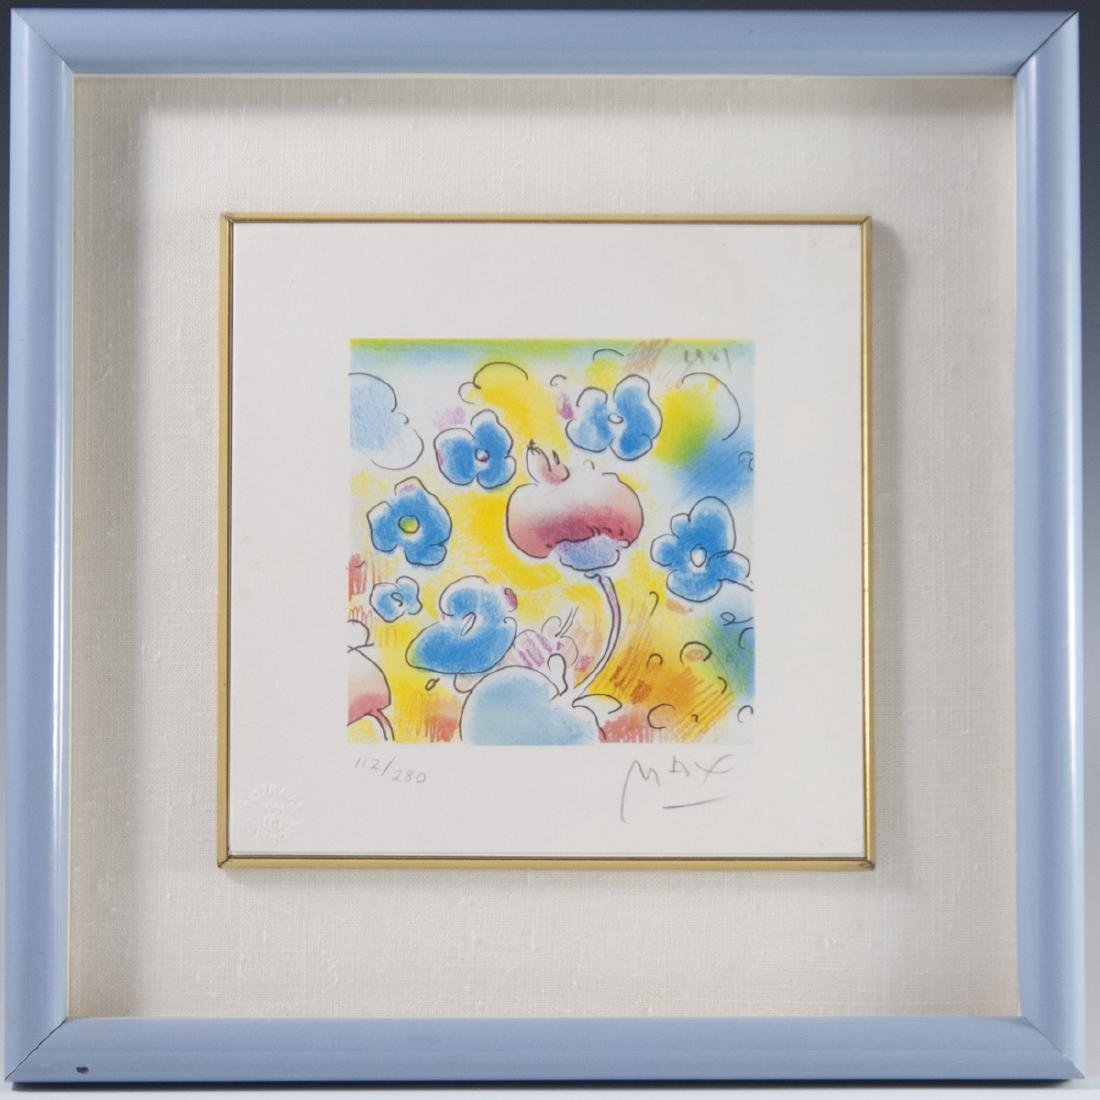 Peter Max(American b. 1937) Lithograph